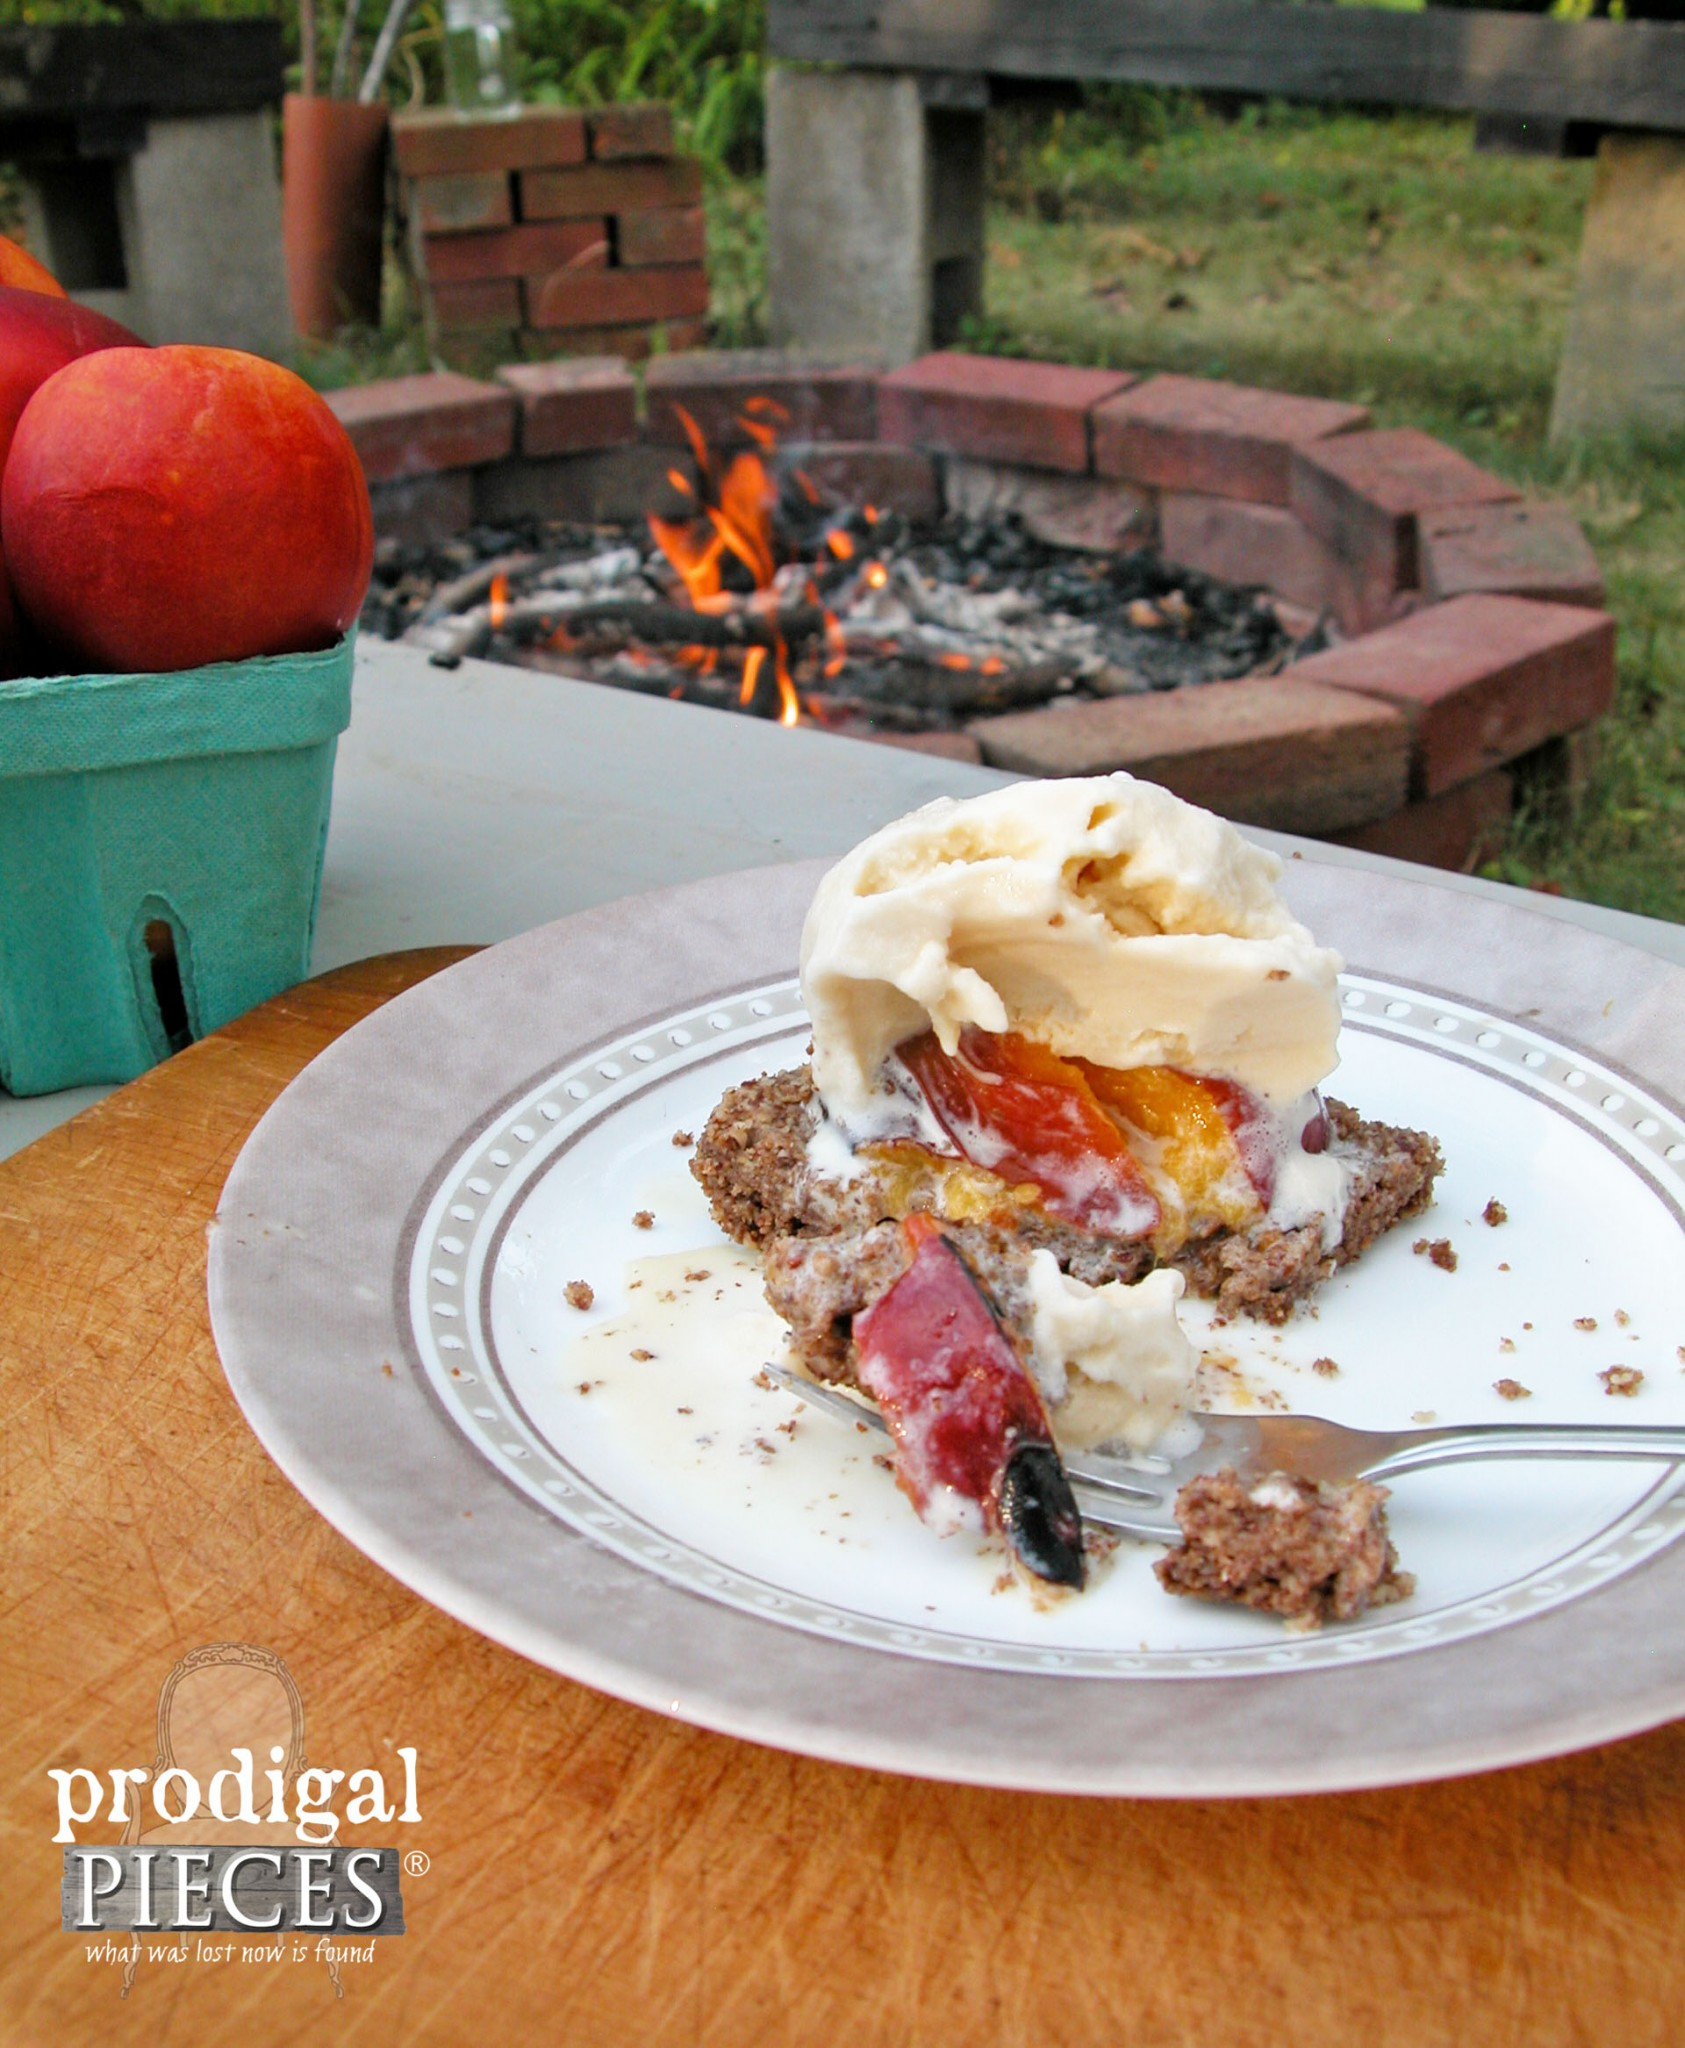 Fire Roasted Stone Fruit on Grain & Gluten Free Crust Topped with Homemade Raw Milk Ice Cream by Prodigal Pieces | www.prodigalpieces.com